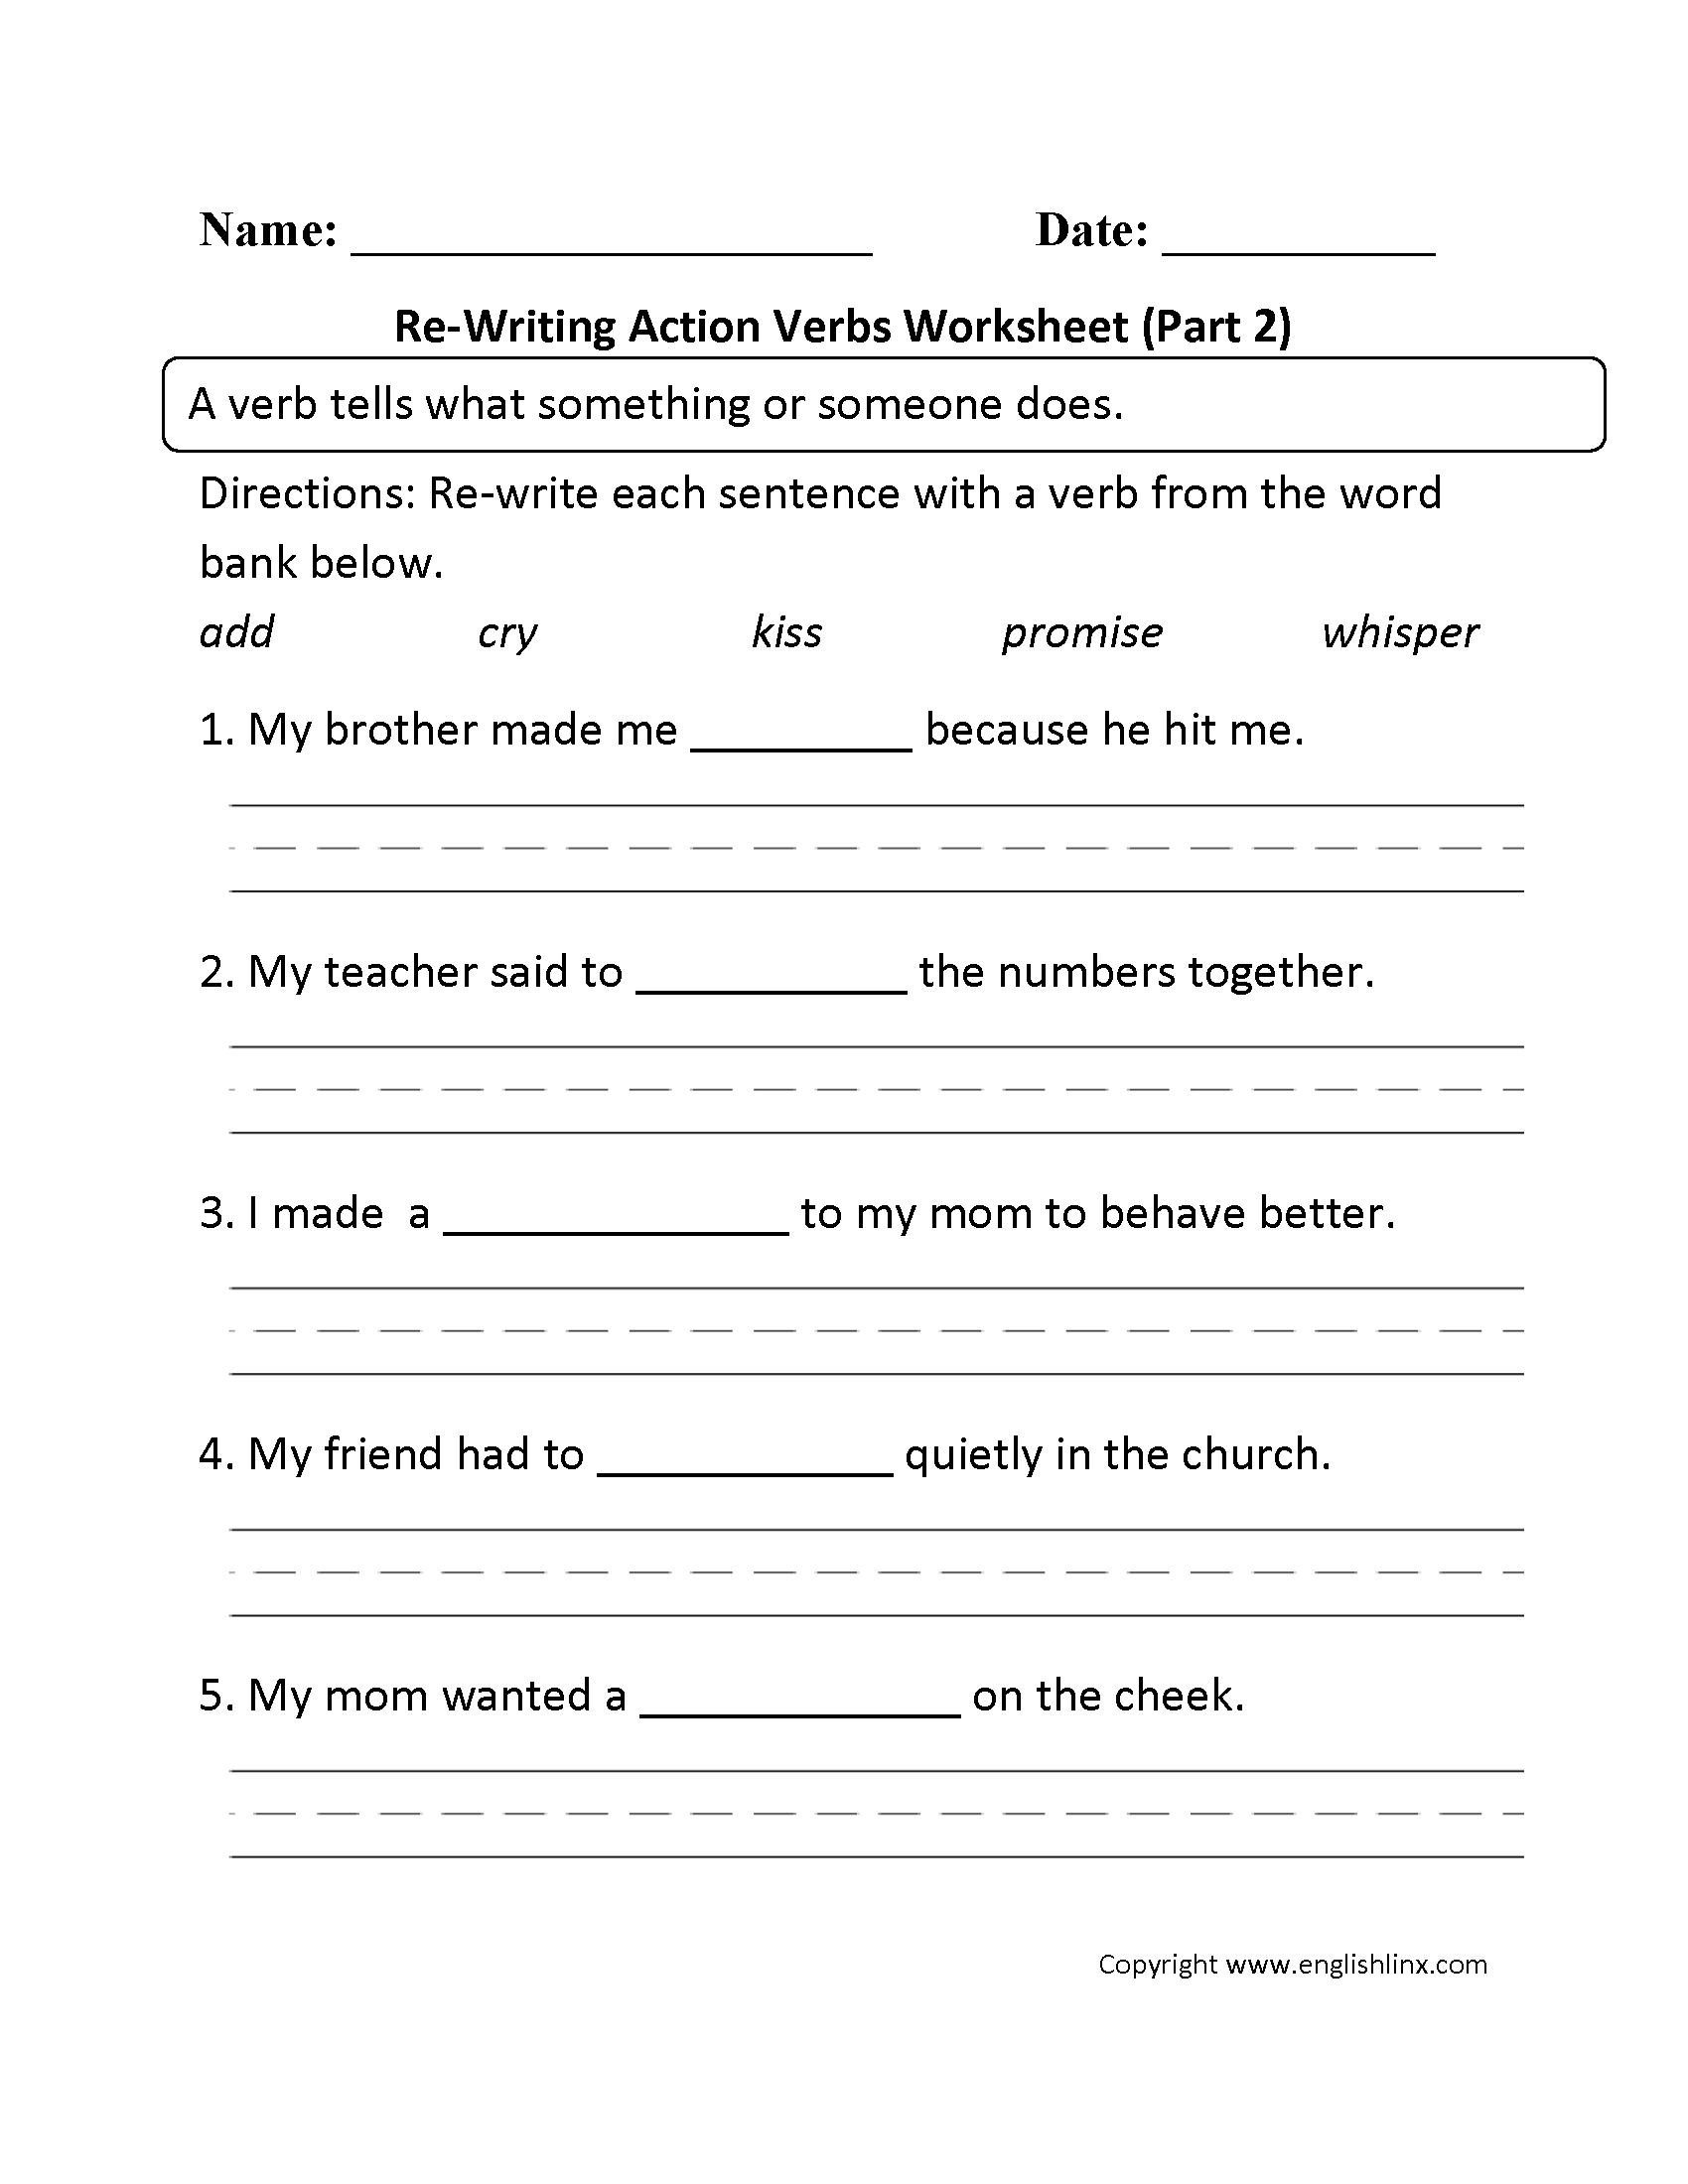 Worksheets Correlative Conjunctions Worksheet re writing action verbs worksheet part 2 haaaaaaaiiii 2